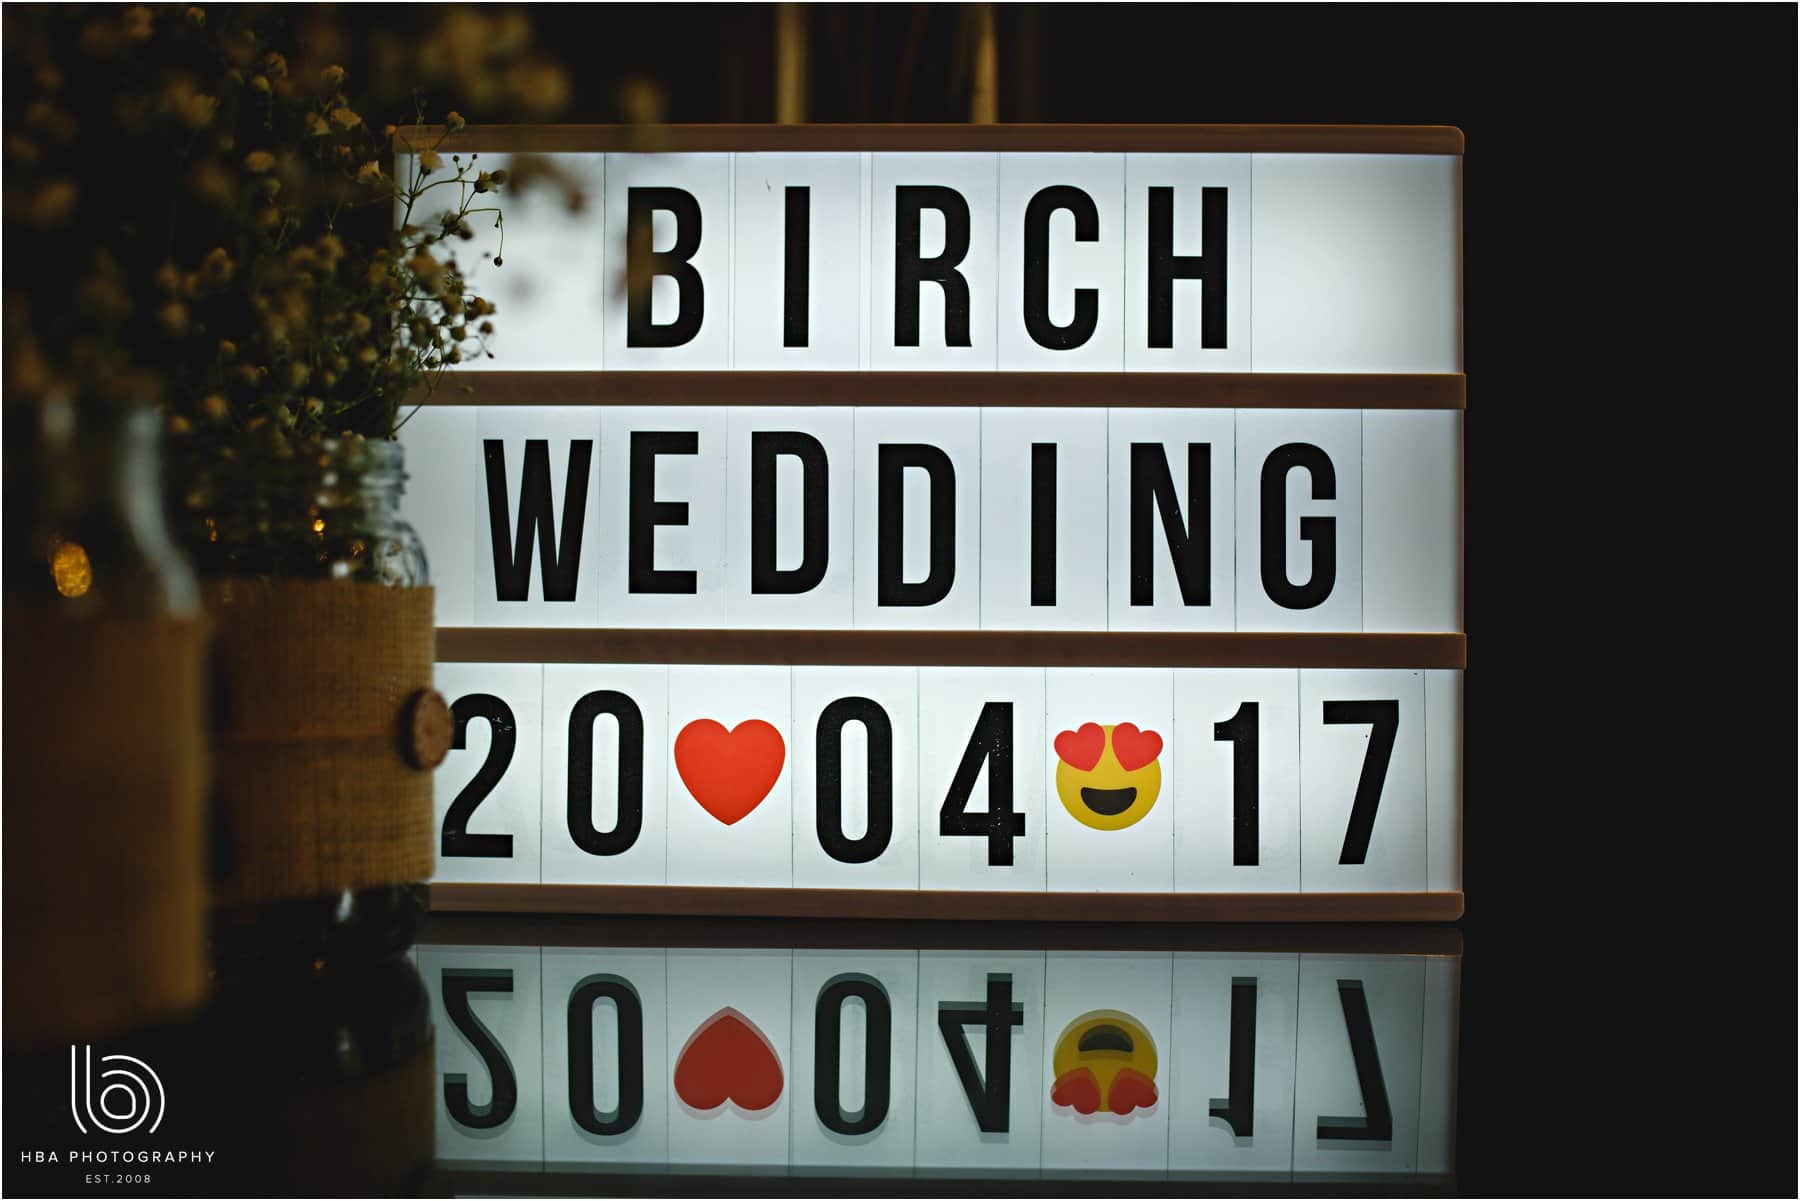 the illuminated sign for weddings